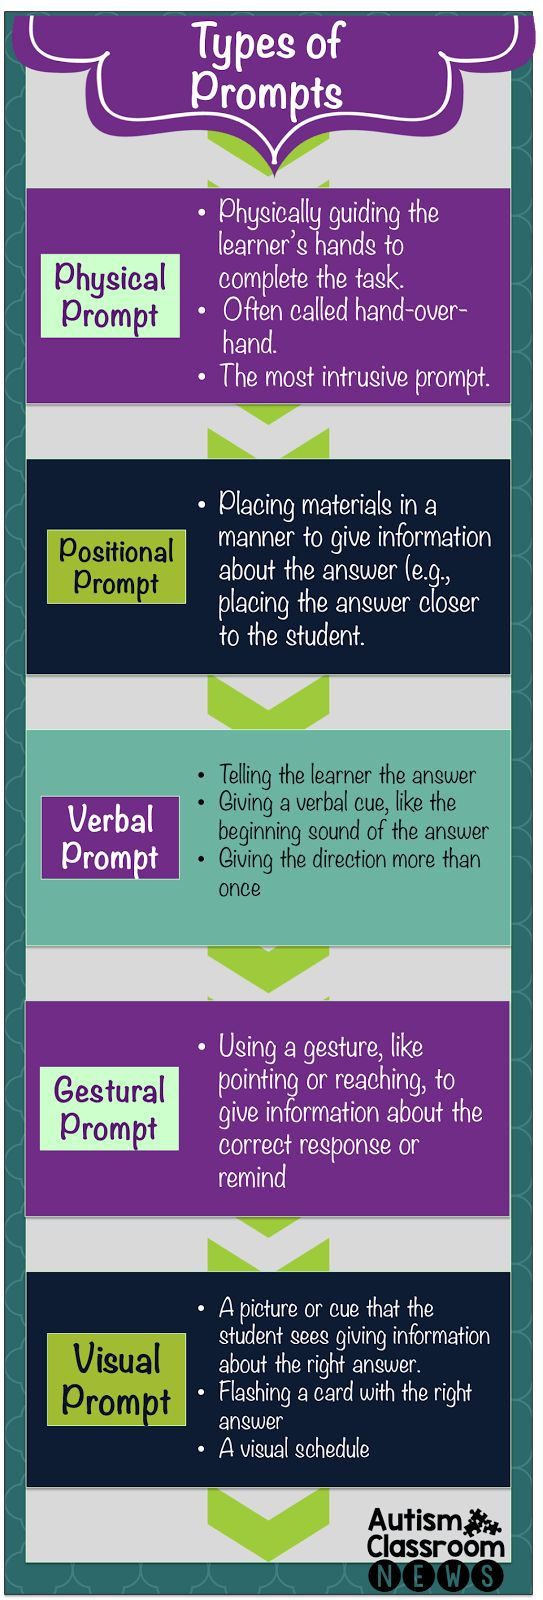 5 Main Types of Prompts: An Infographic - Autism Classroom Resources